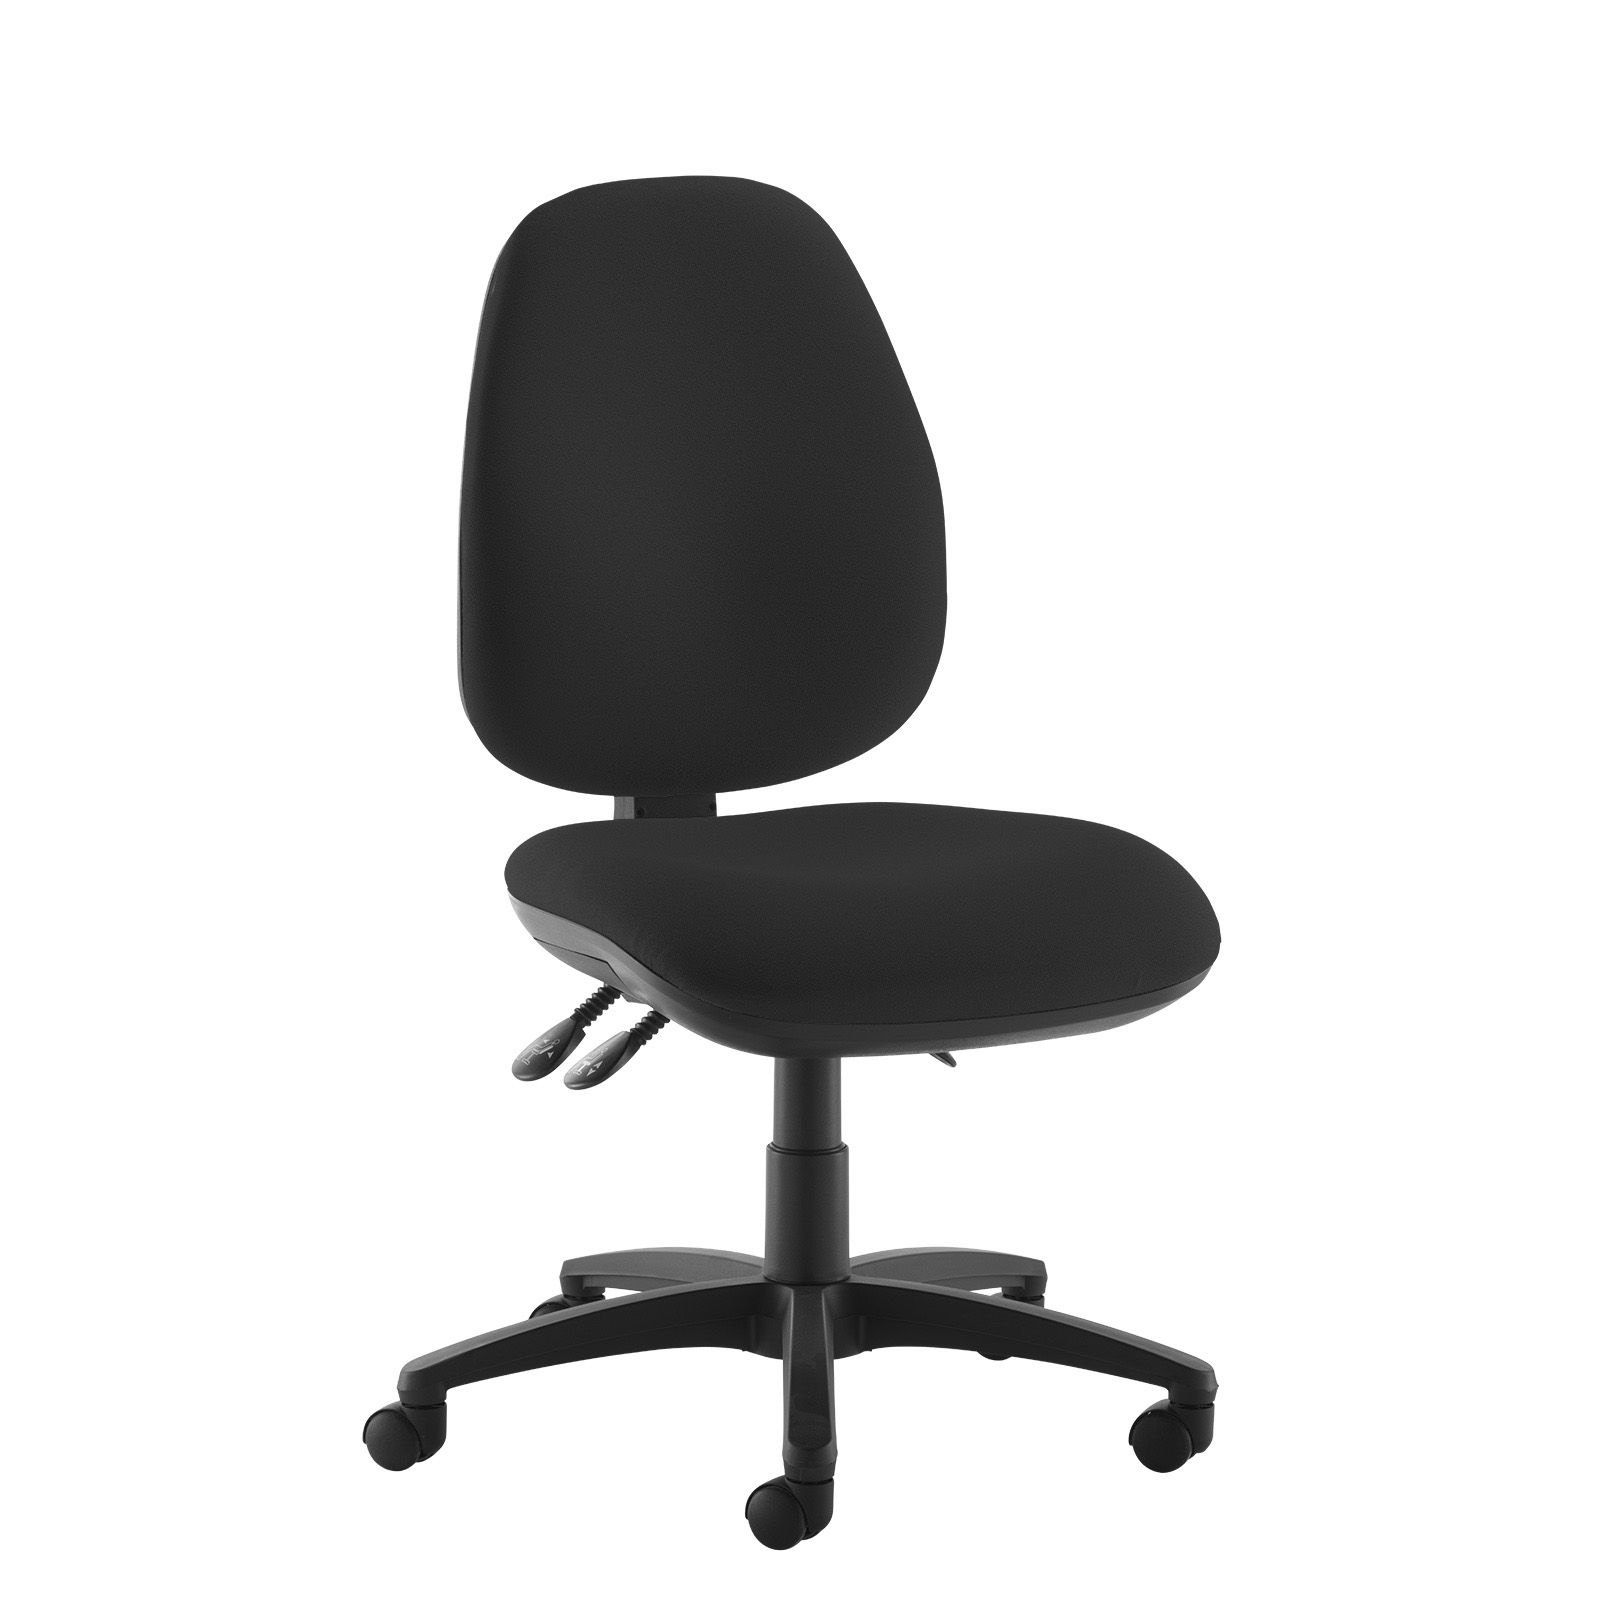 Desk Chairs Jota high back operator chair with no arms - black